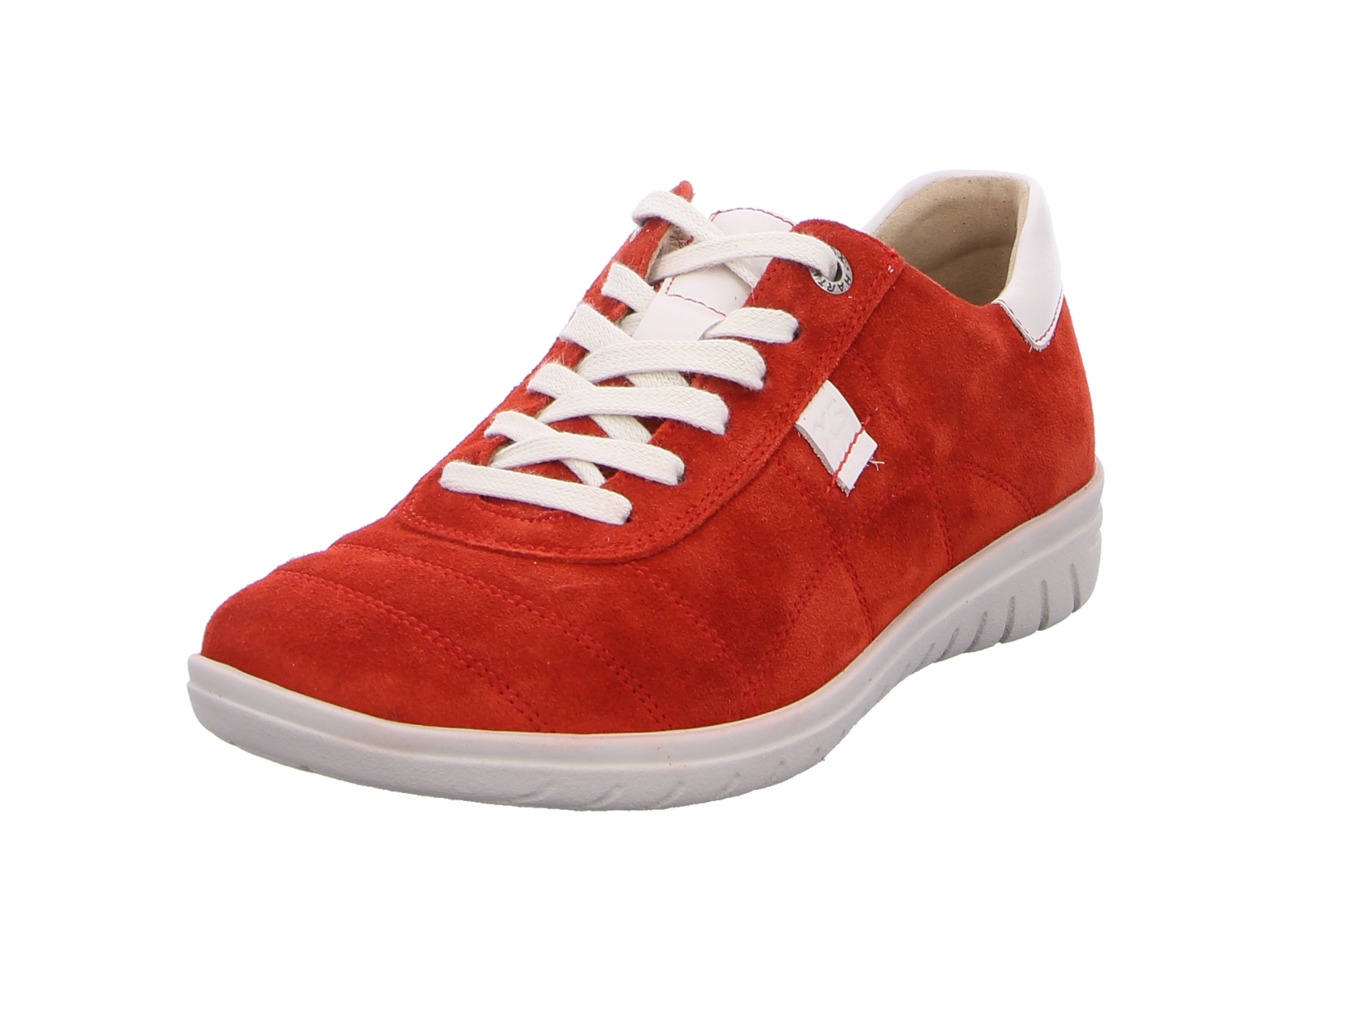 hartjes_xs_casual_2_rot_83862_54_5_1156